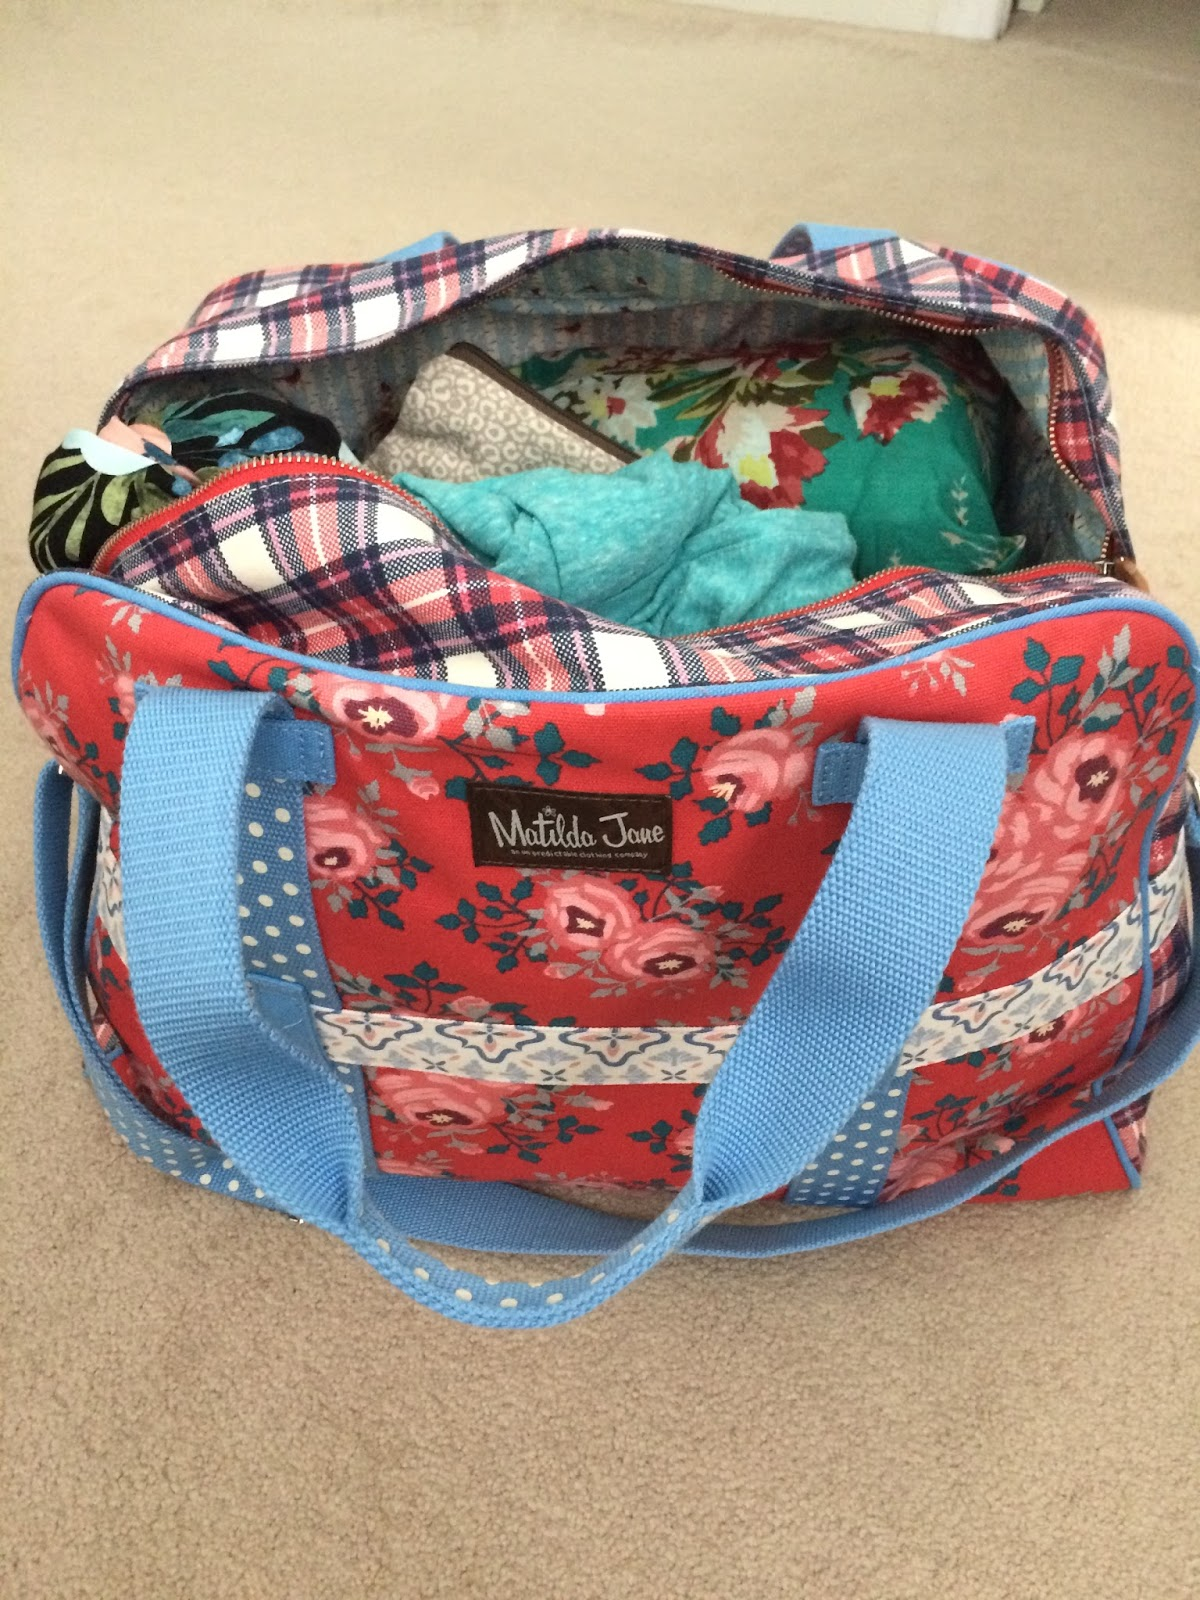 68ac3efdab4f0 That it is every pregnant blogger's rite of passage to share the contents  of her hospital bag, even though there is certainly no shortage of hospital  bag ...